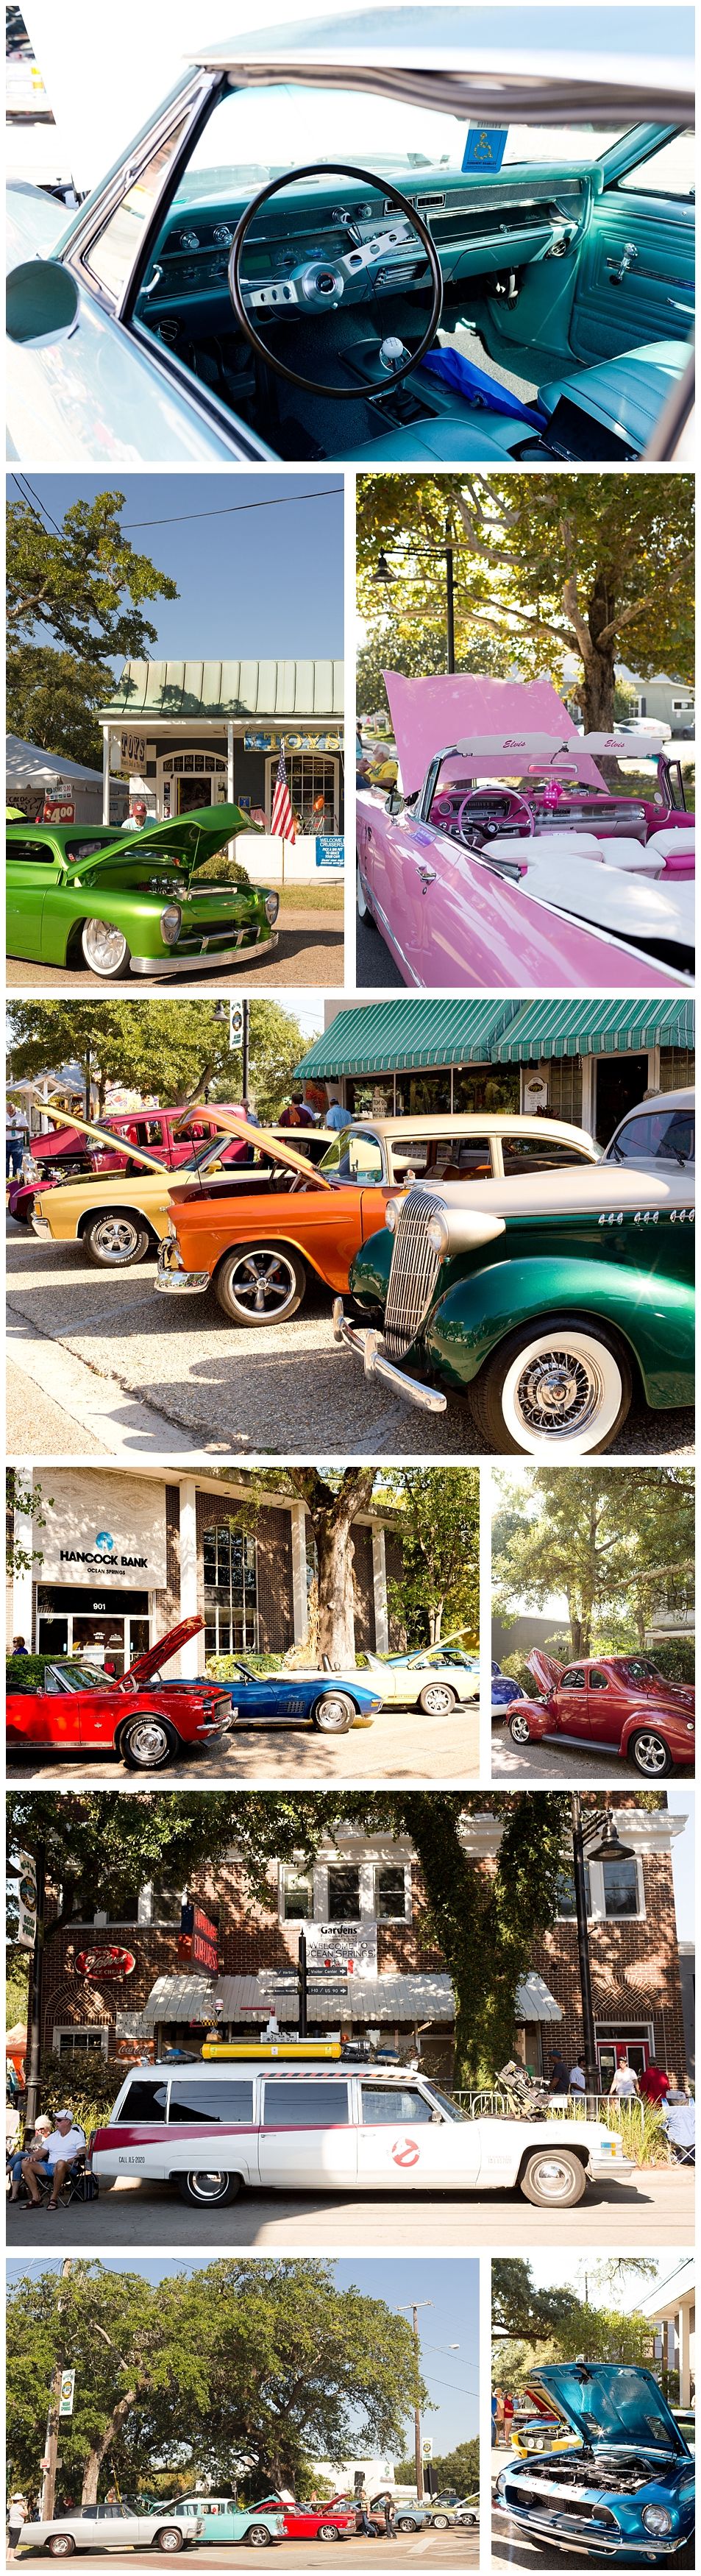 Crusin' the Coast cars in Ocean Springs, Mississippi